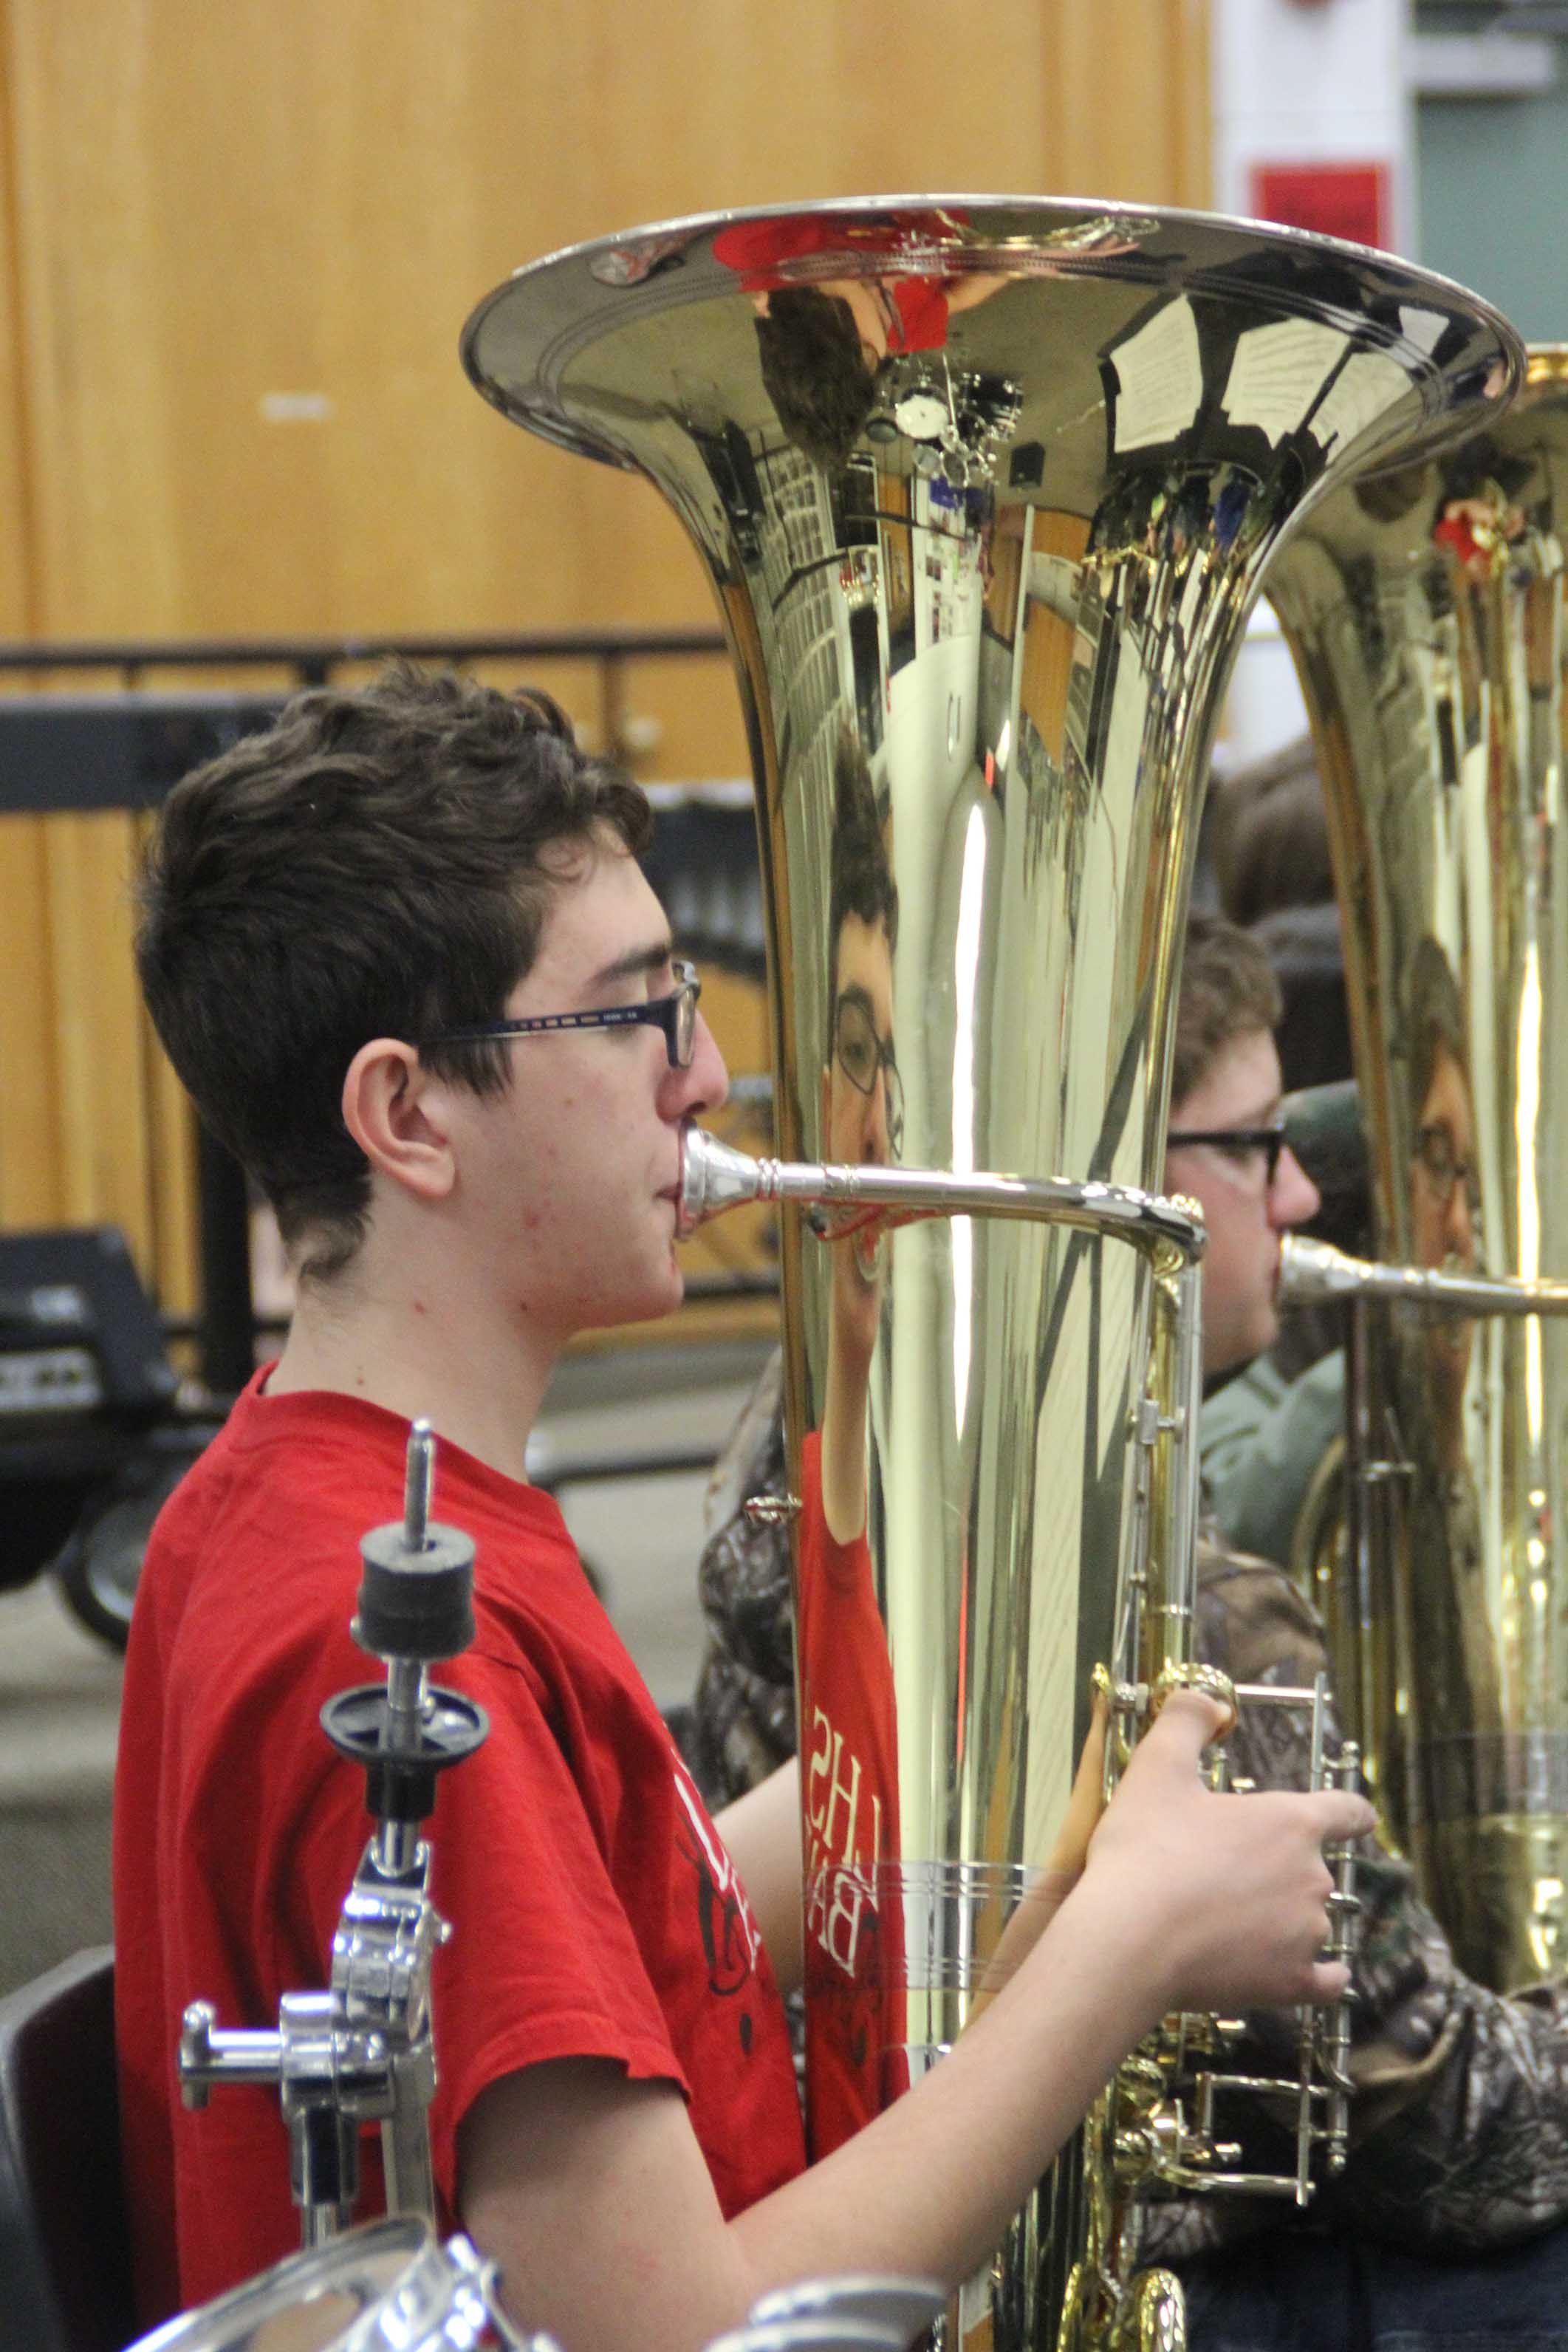 Practicing — Concert tuba player, Noah Stussie, plays in preparation for the Regional Music Competition.